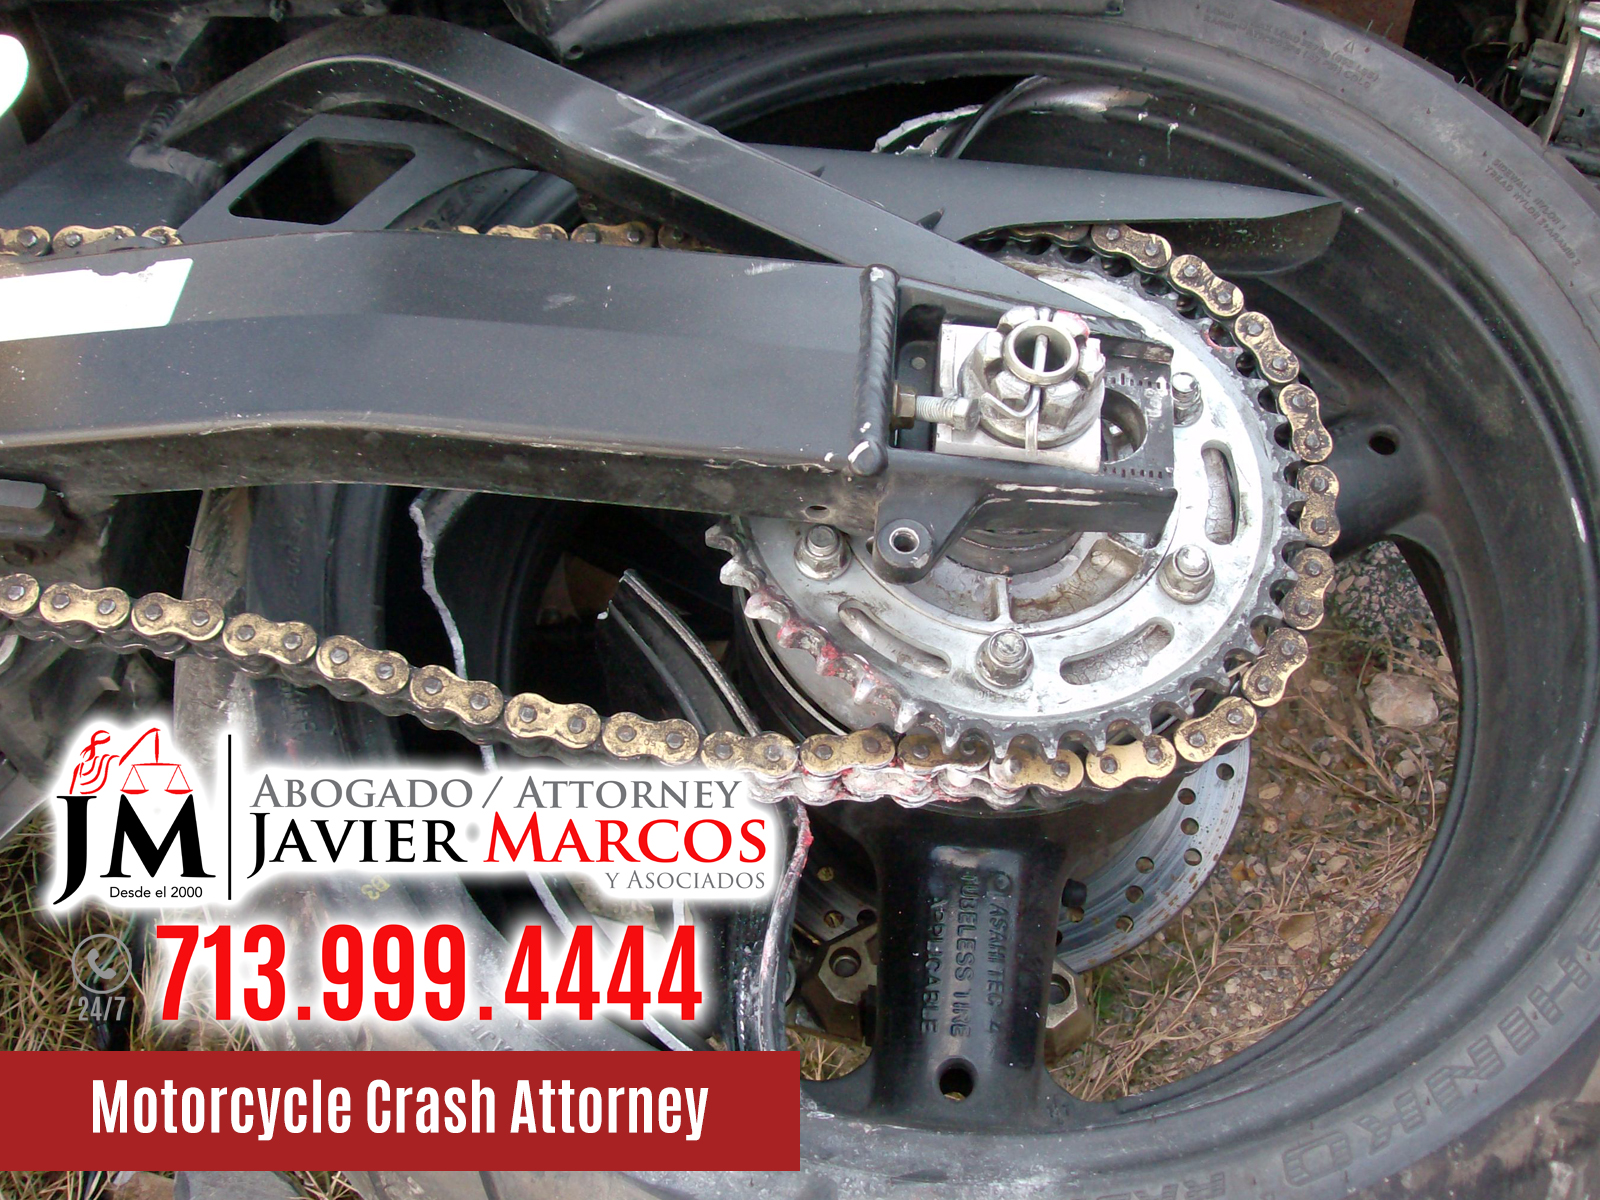 Attorney for Car Accident | Attorney Javier Marcos | 713.999.4444